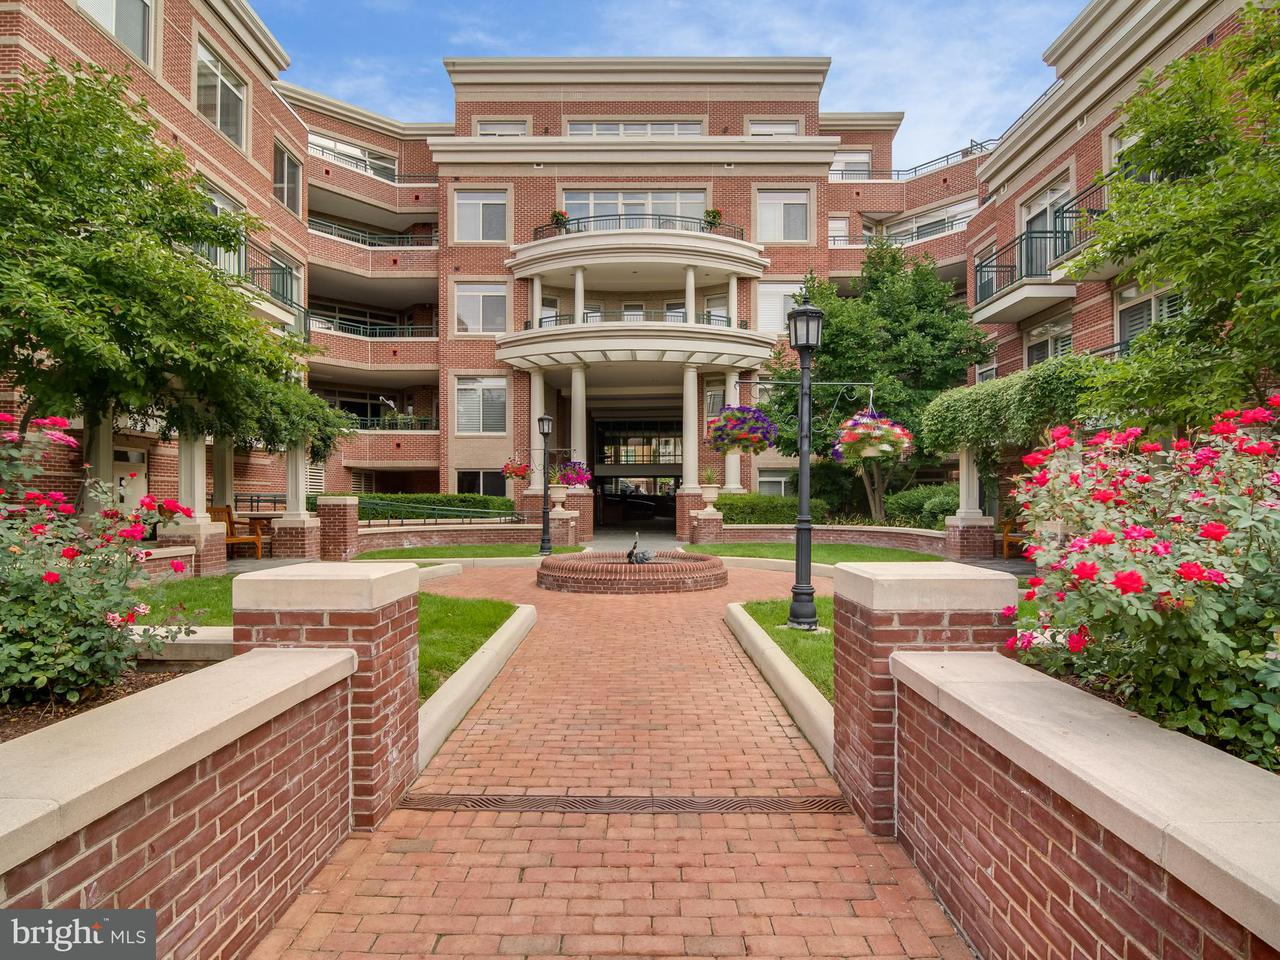 Condominium for Sale at 66 Franklin St #103 66 Franklin St #103 Annapolis, Maryland 21401 United States